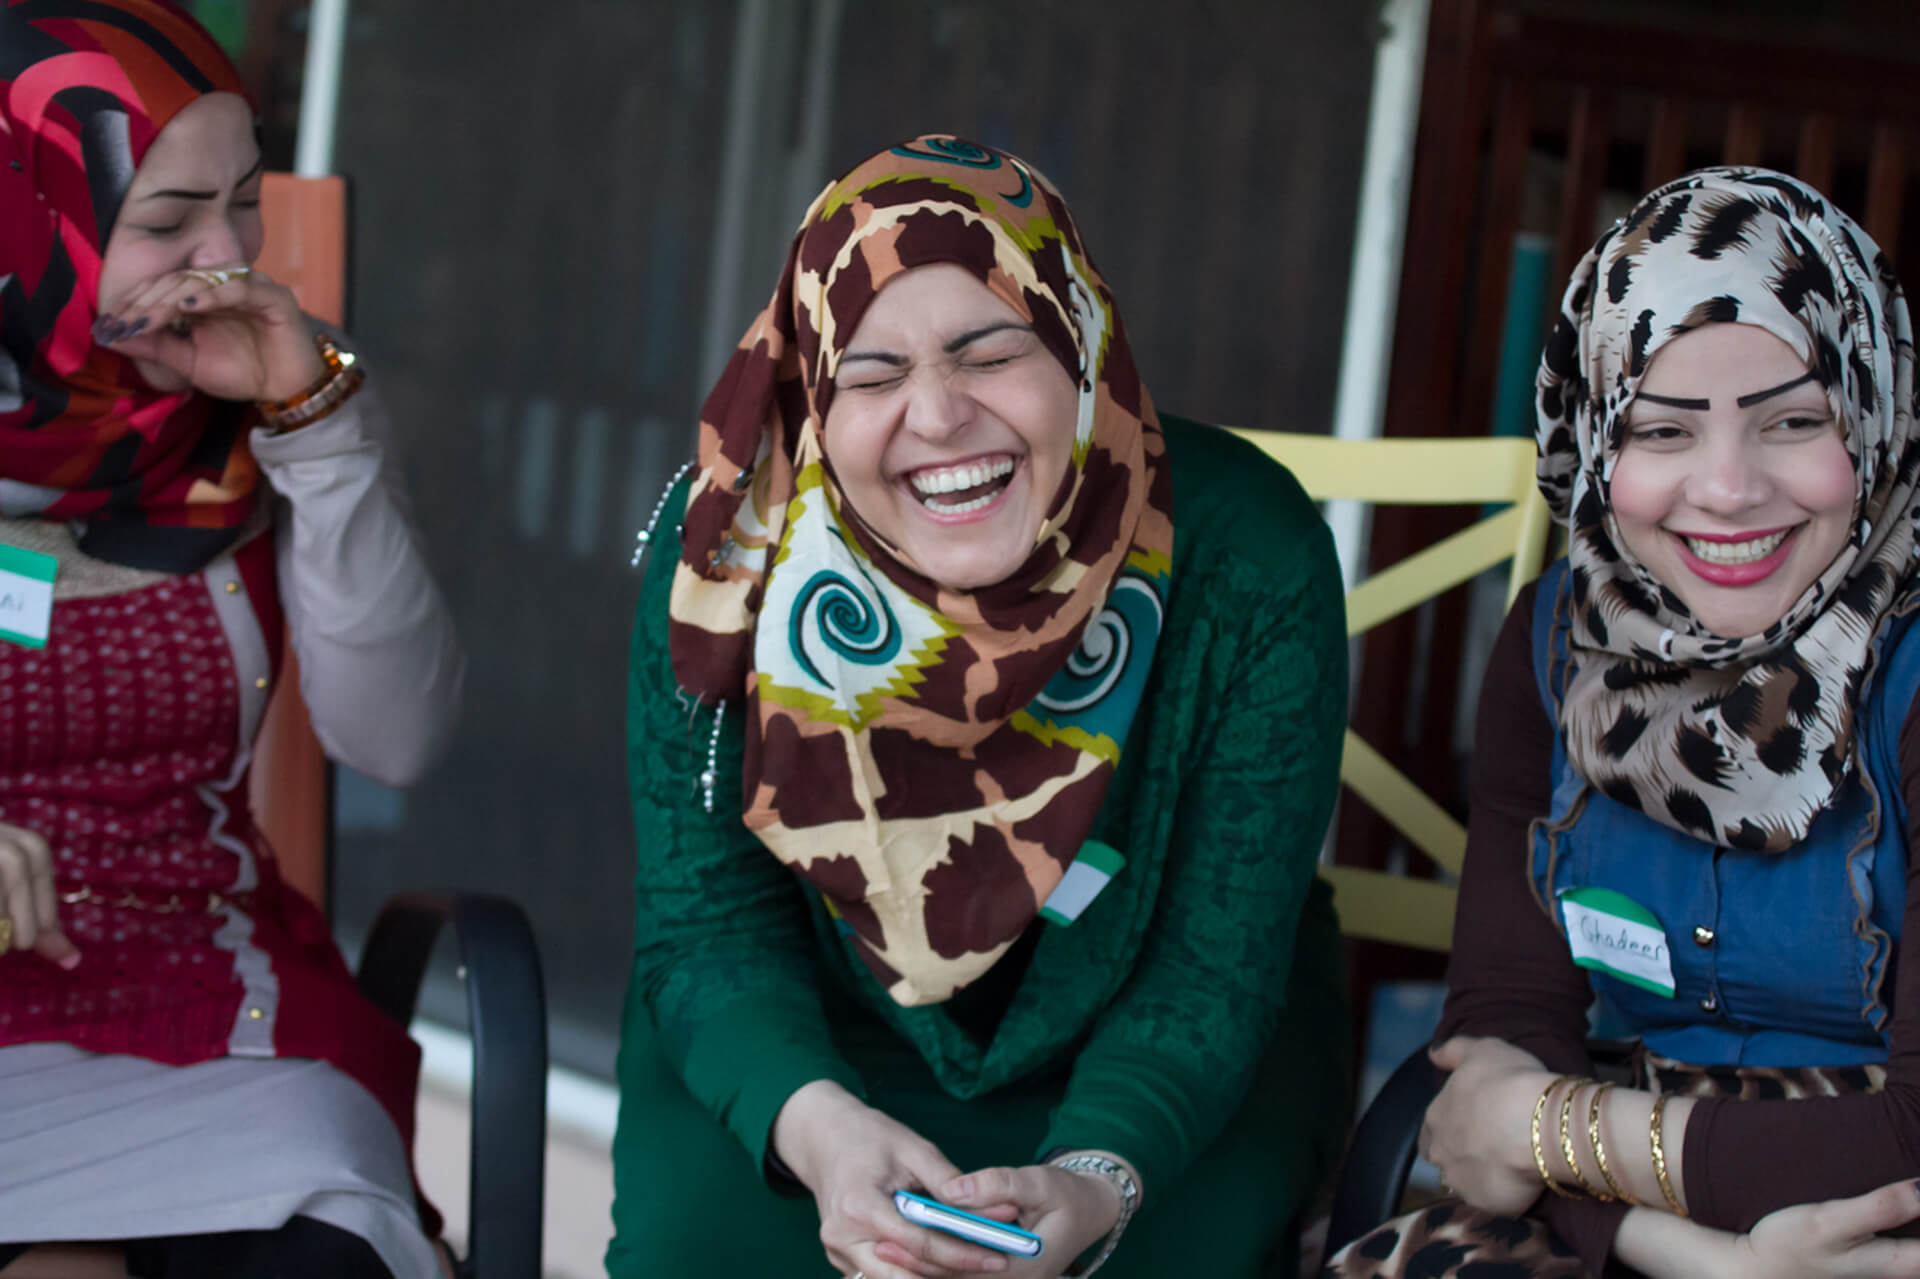 Two sisters and a friend share a laugh at a welcome party for the woman to the far right who had been separated from her sister and kin for 4 years due to being in a refugee camp.